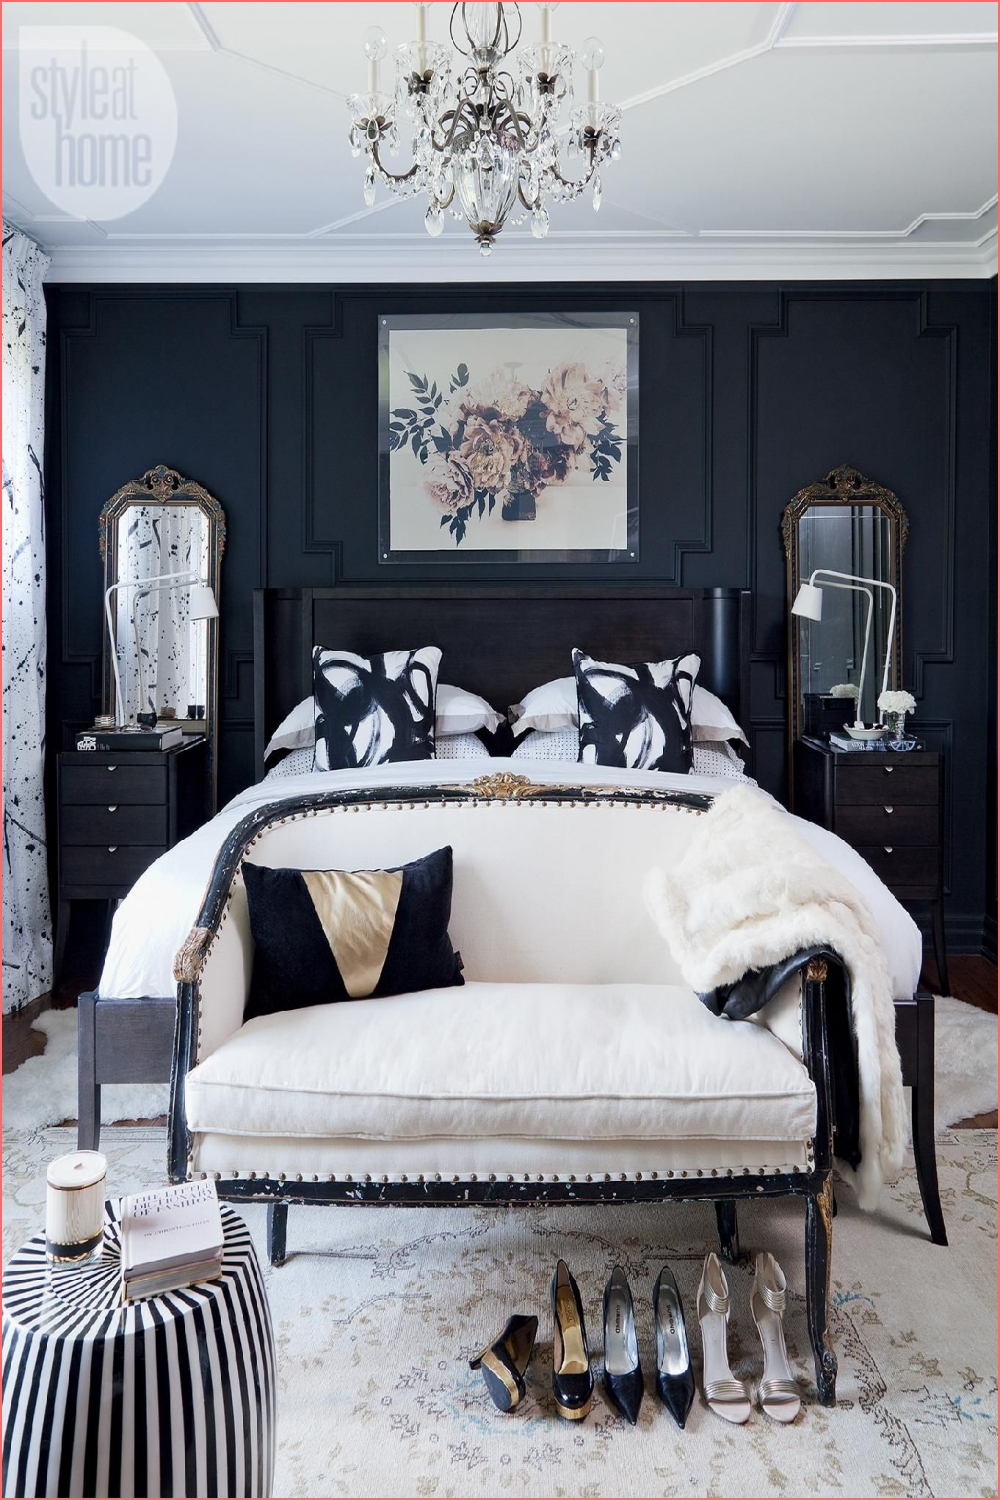 Pin on Interiors on luxury black and white bedroom on luxury black and white bedroom post on 2020-11-21 16:53:49